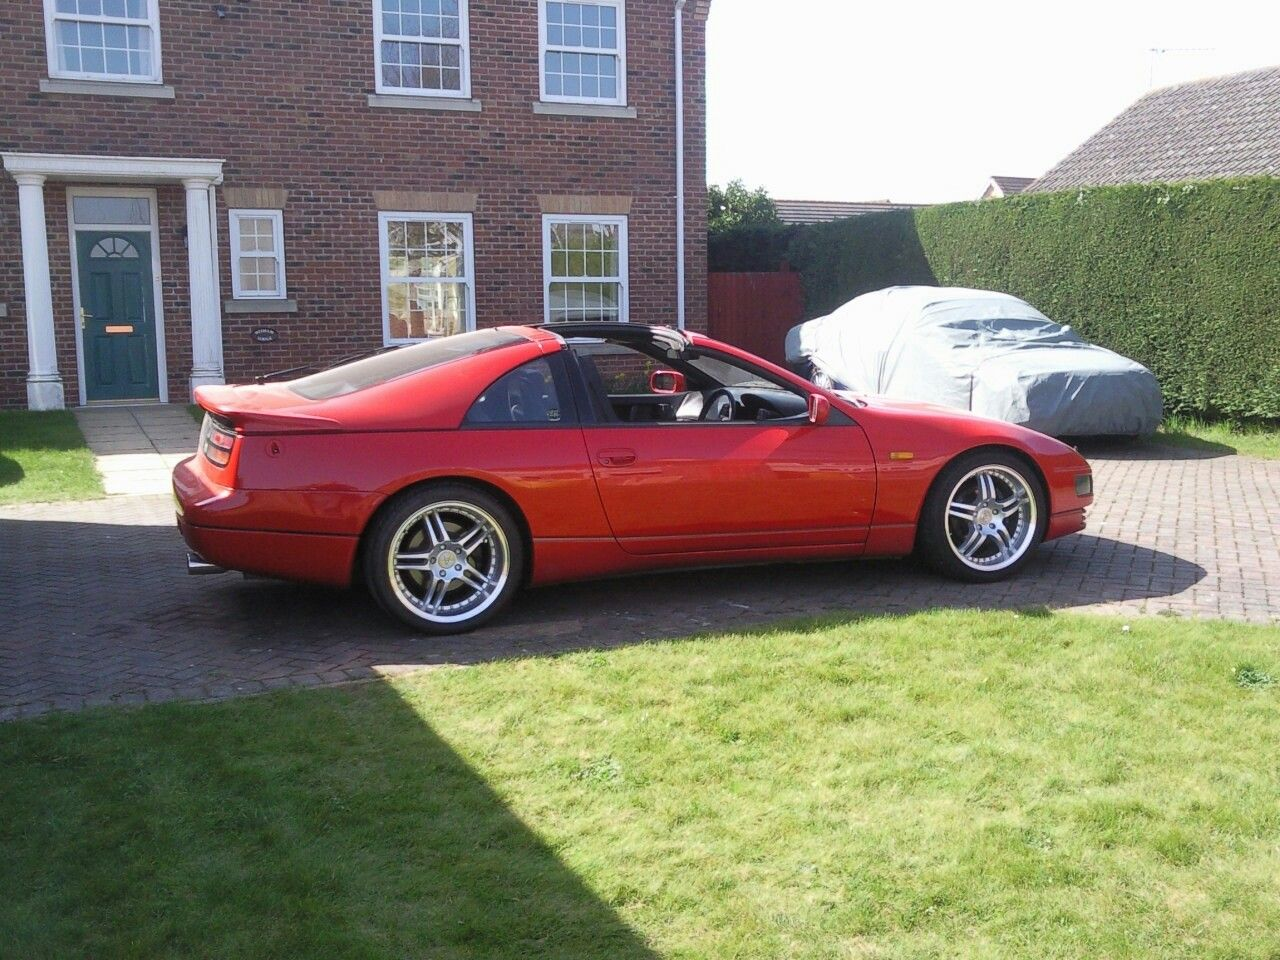 nissan 300zx twin turbo uk spec rare now in the uk